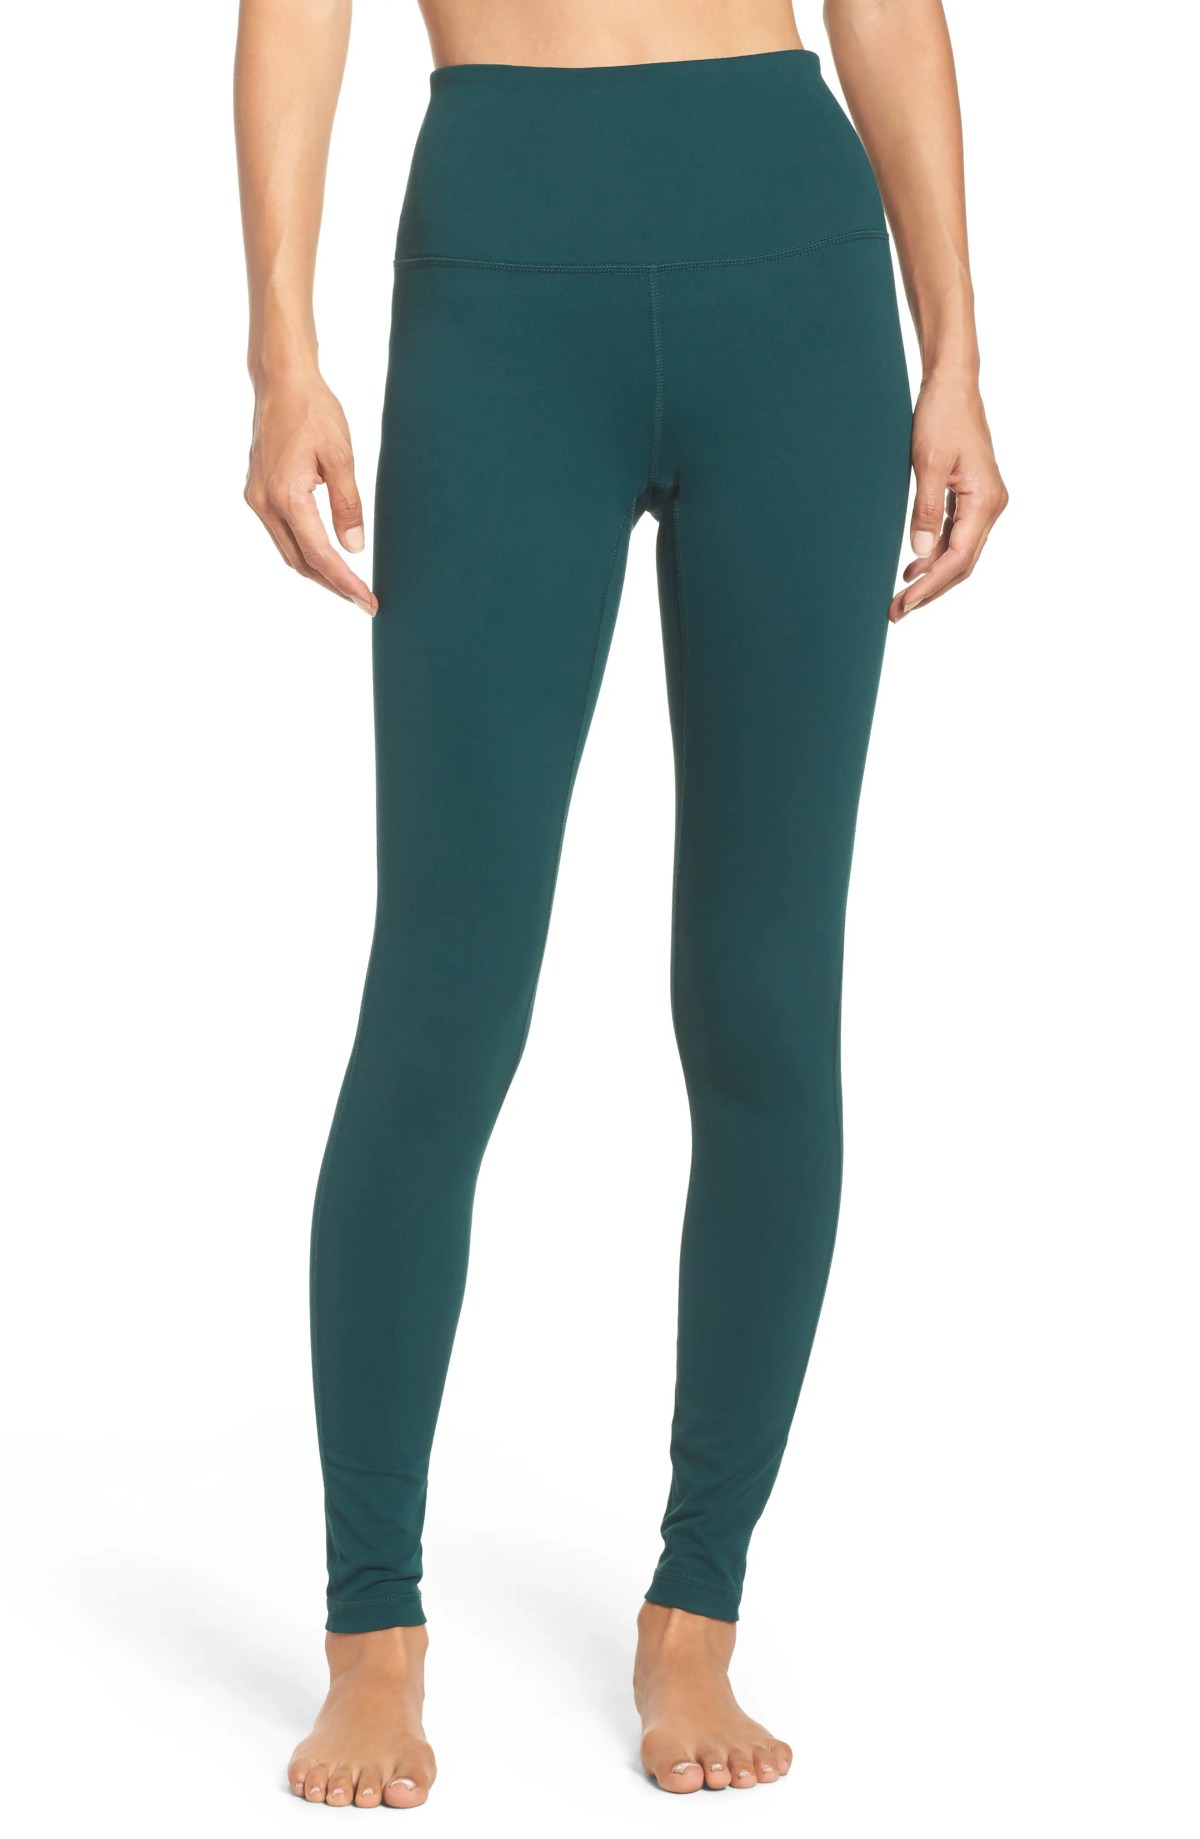 ZELLA Live In High Waist Leggings, Main, color, GREEN PONDEROSA